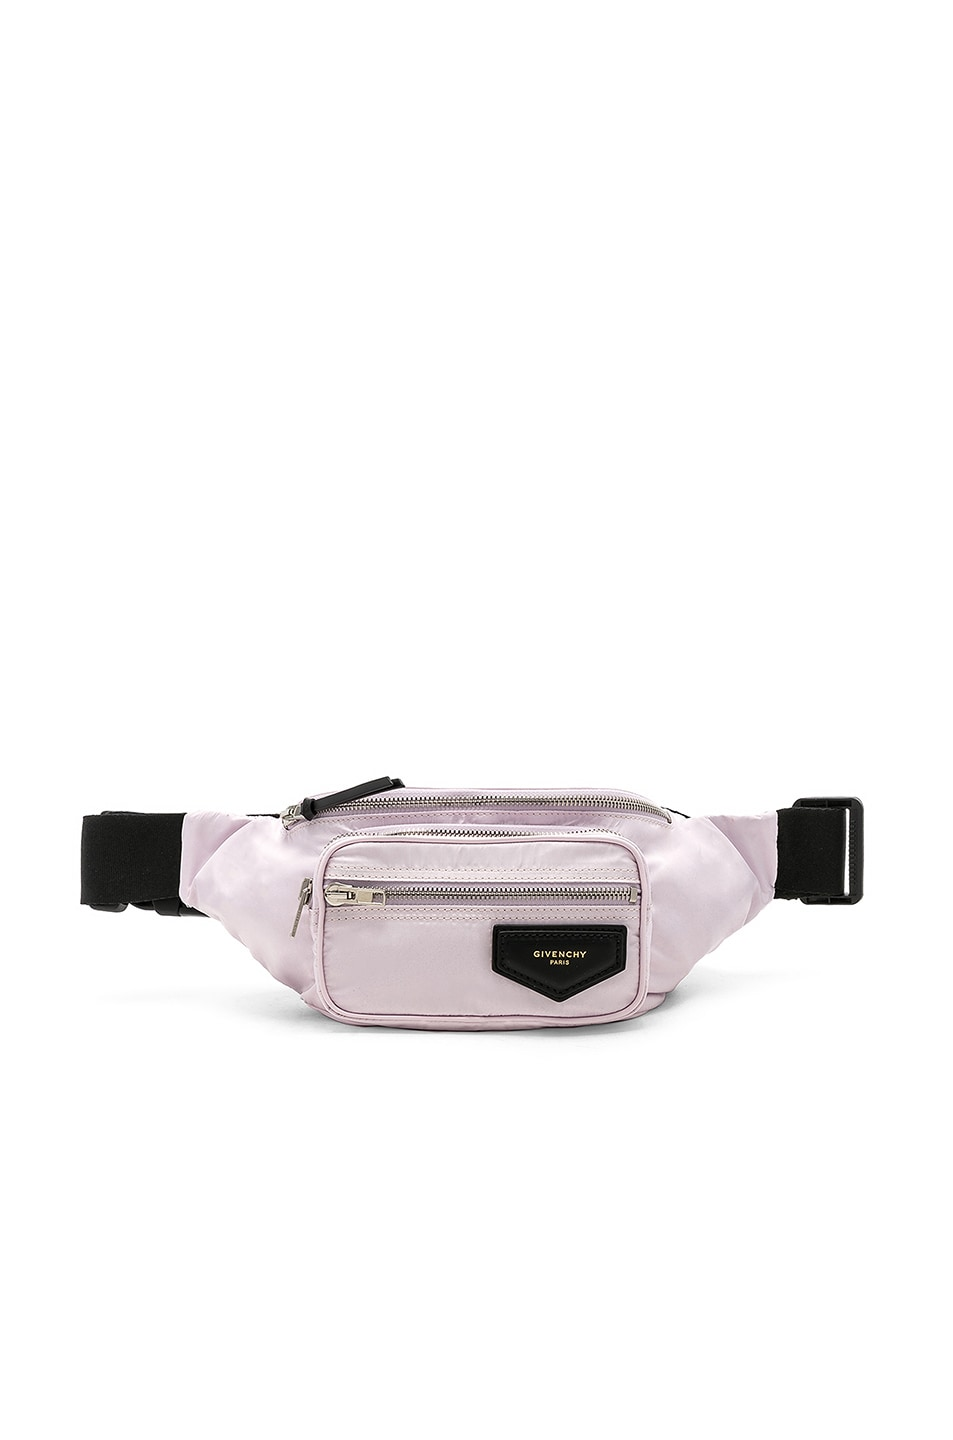 GIVENCHY BUM BAG IN PINK